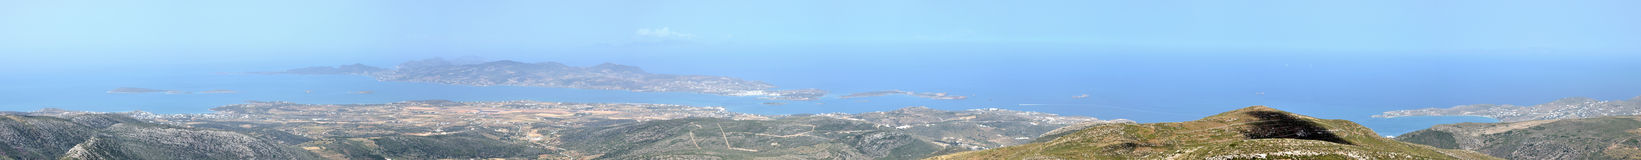 Greece, Antiparos panorama. Greace cyclades island: Paros and Antiparos wide panorama royalty free stock images